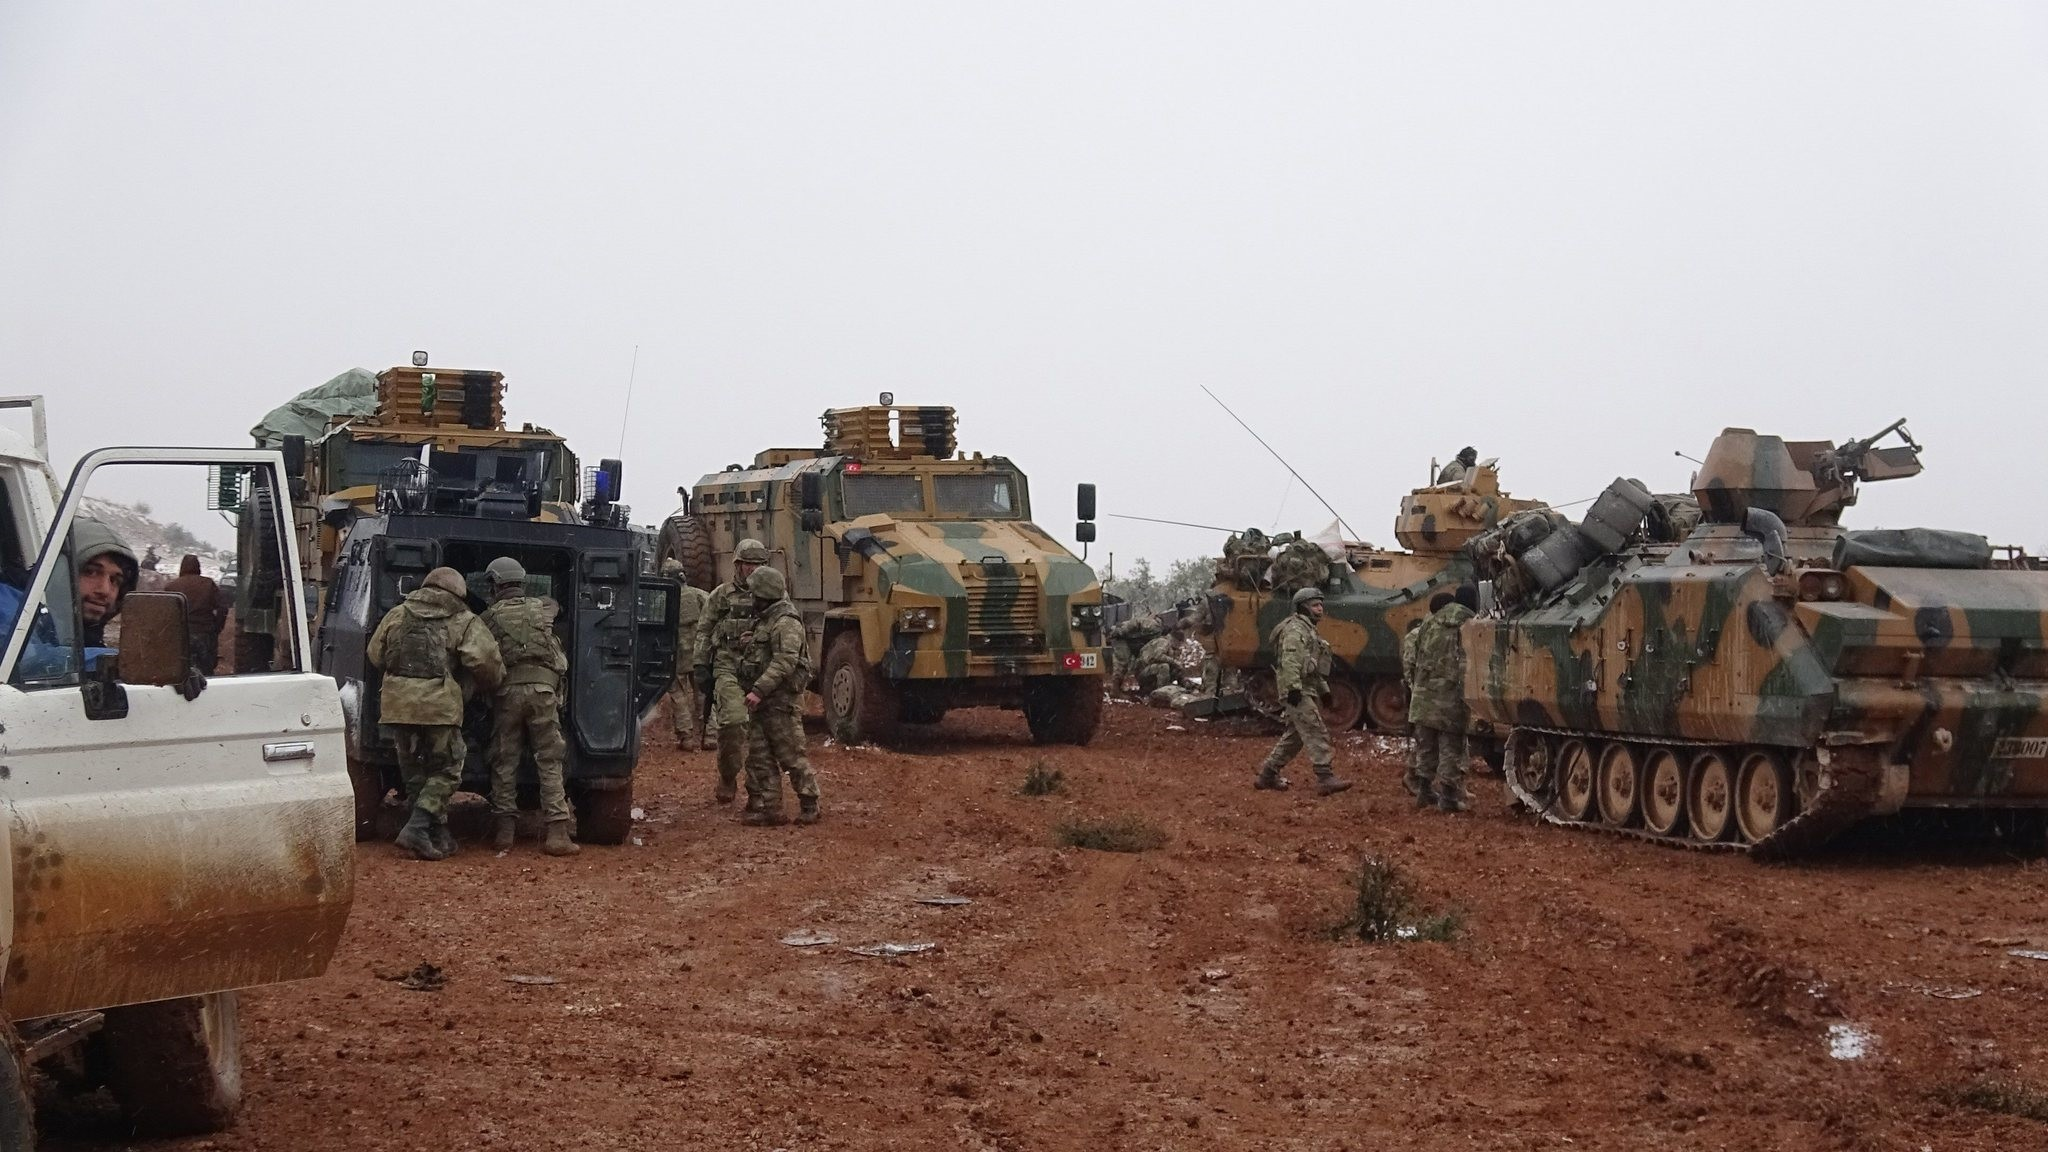 Turkish forces are seen in al-Bab town in northern Syria. (IHA Photo)